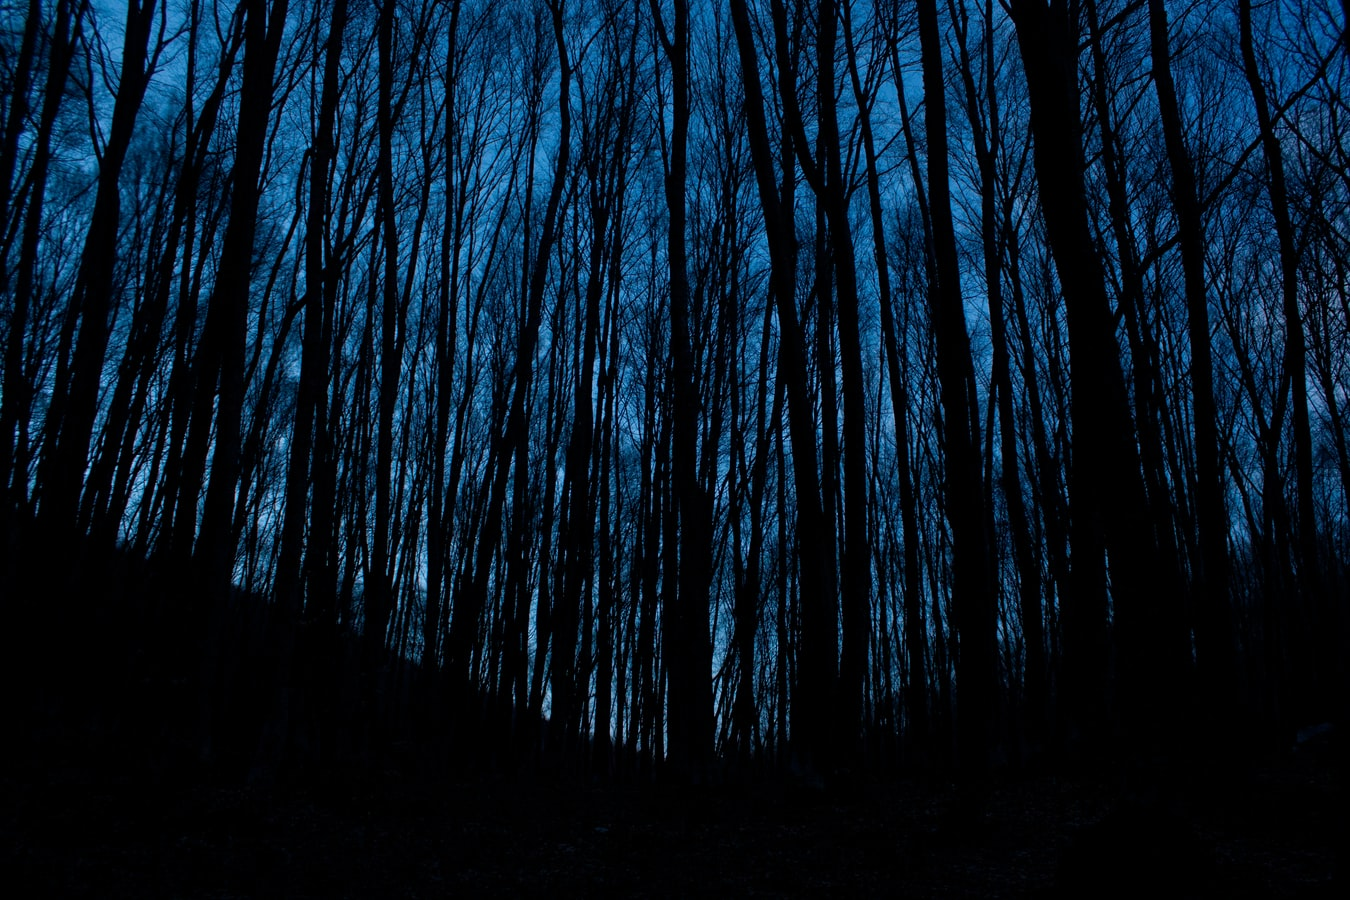 scary tall and thin black trees in blue background